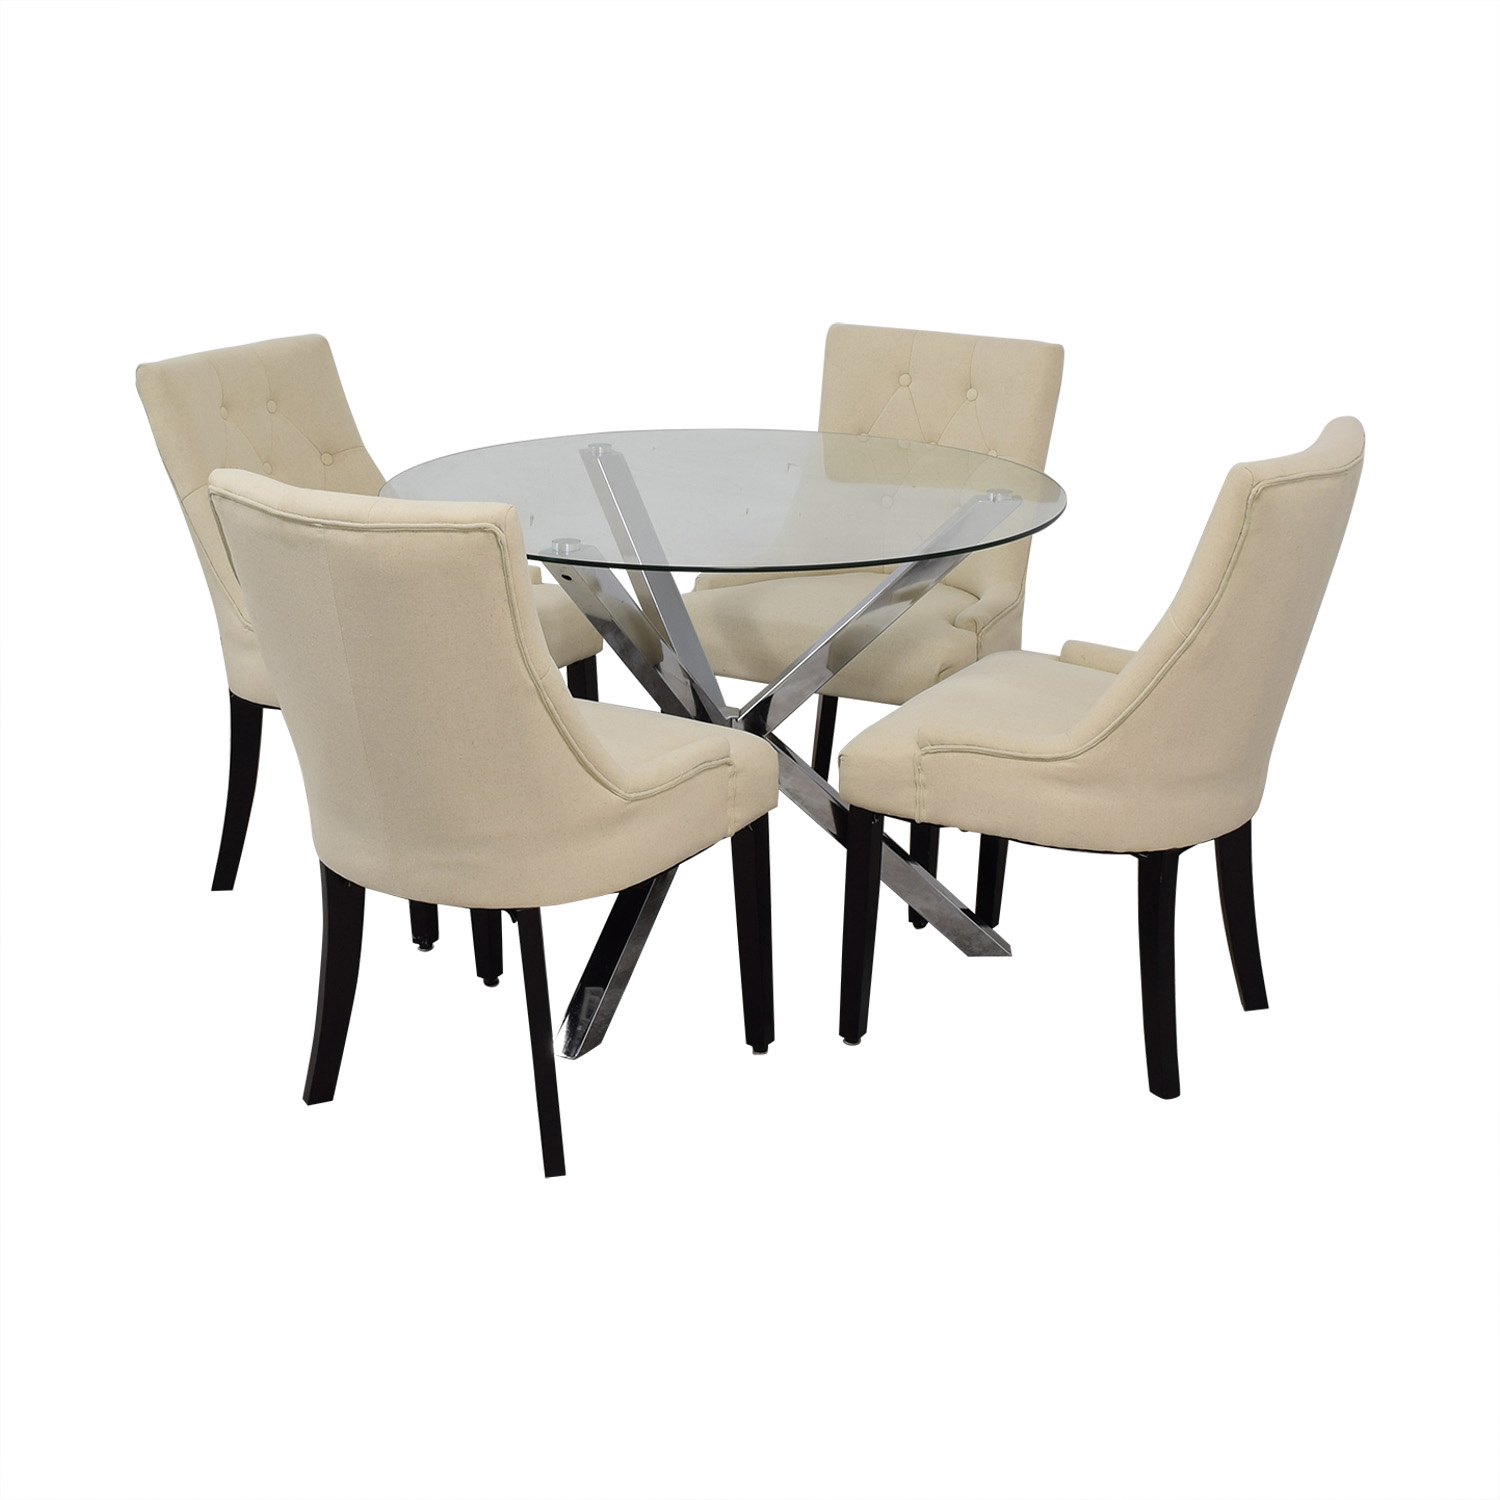 Wayfair Wayfair Round Glass Dining Set Dining Sets